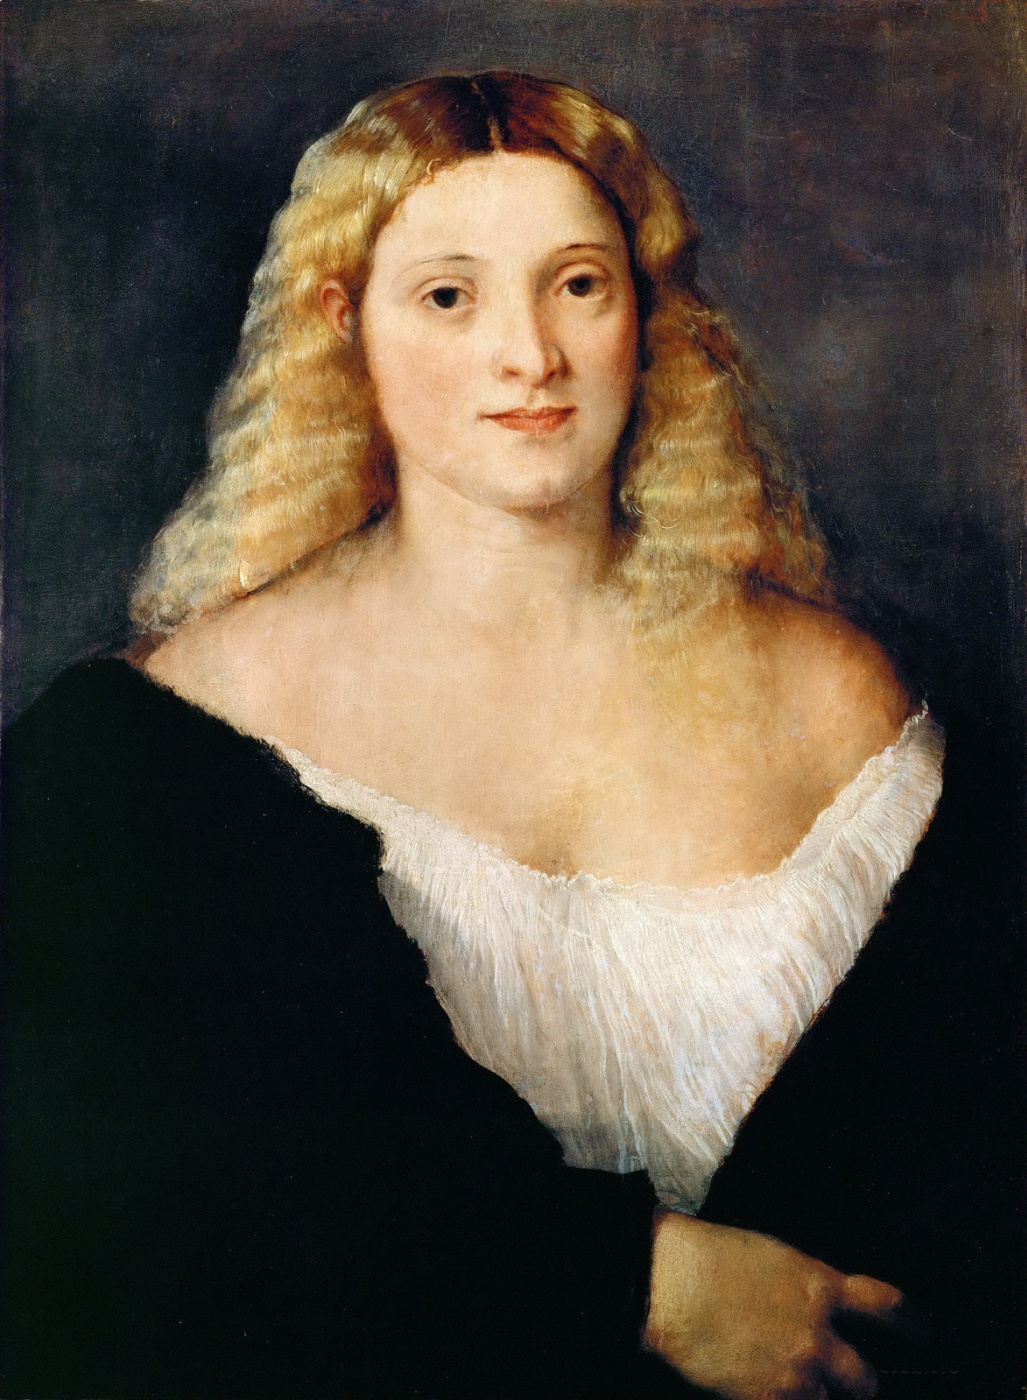 Titian Vecelli. Portrait of a young woman in a black dress